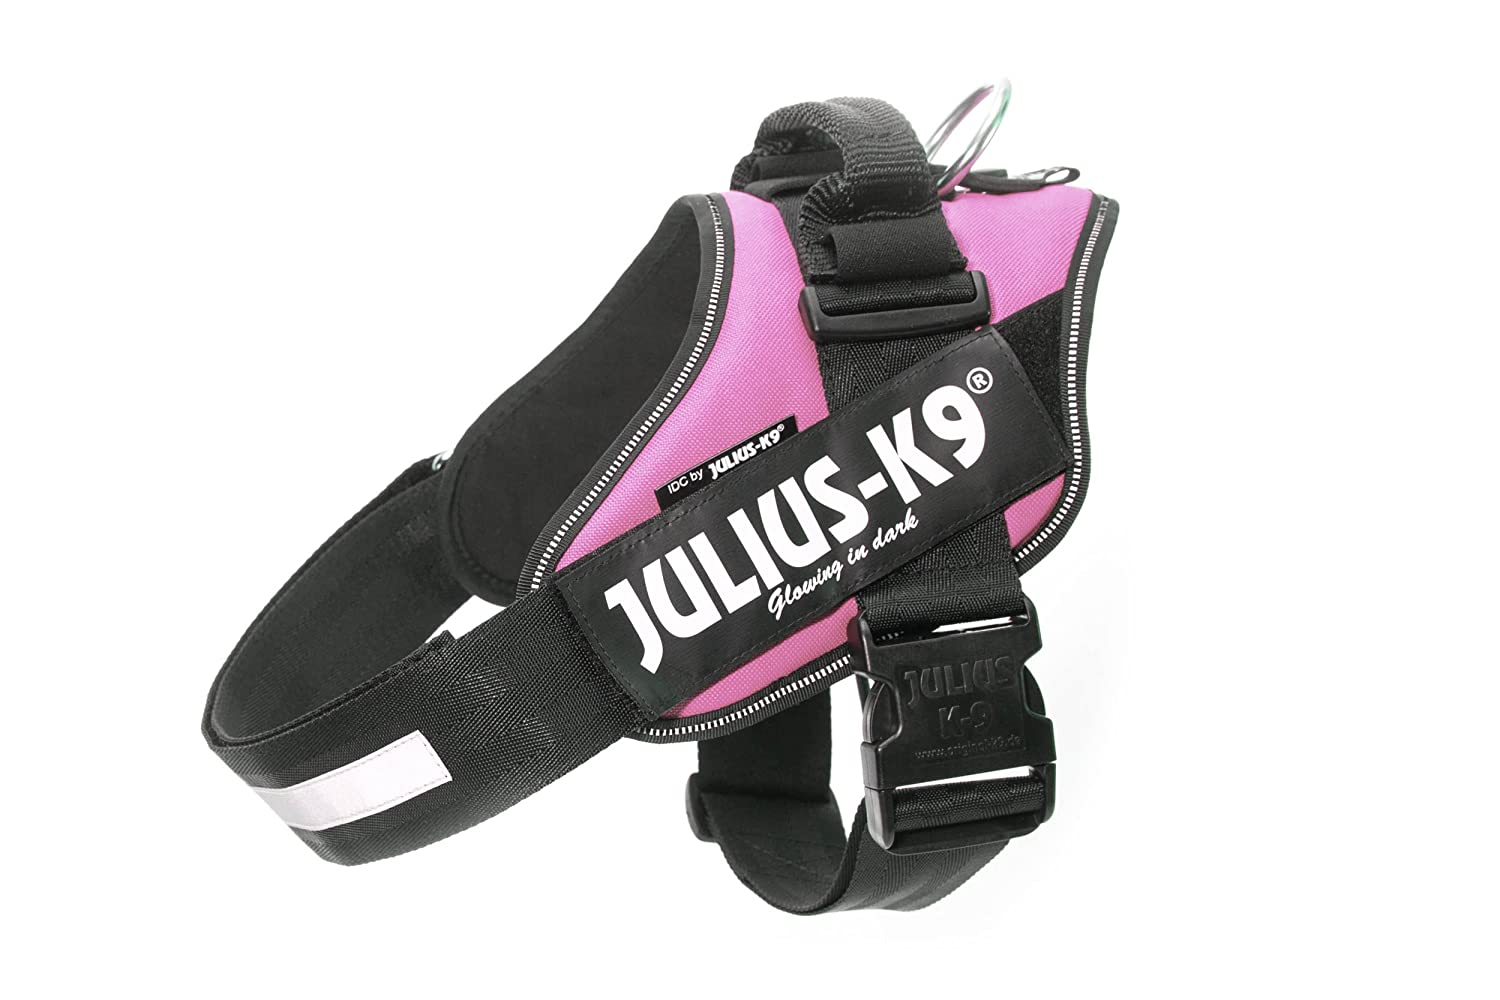 Julius k9 16IDC-PN-MM IDC Power Harness, Tamaño Mini, Rosa K9-Sport